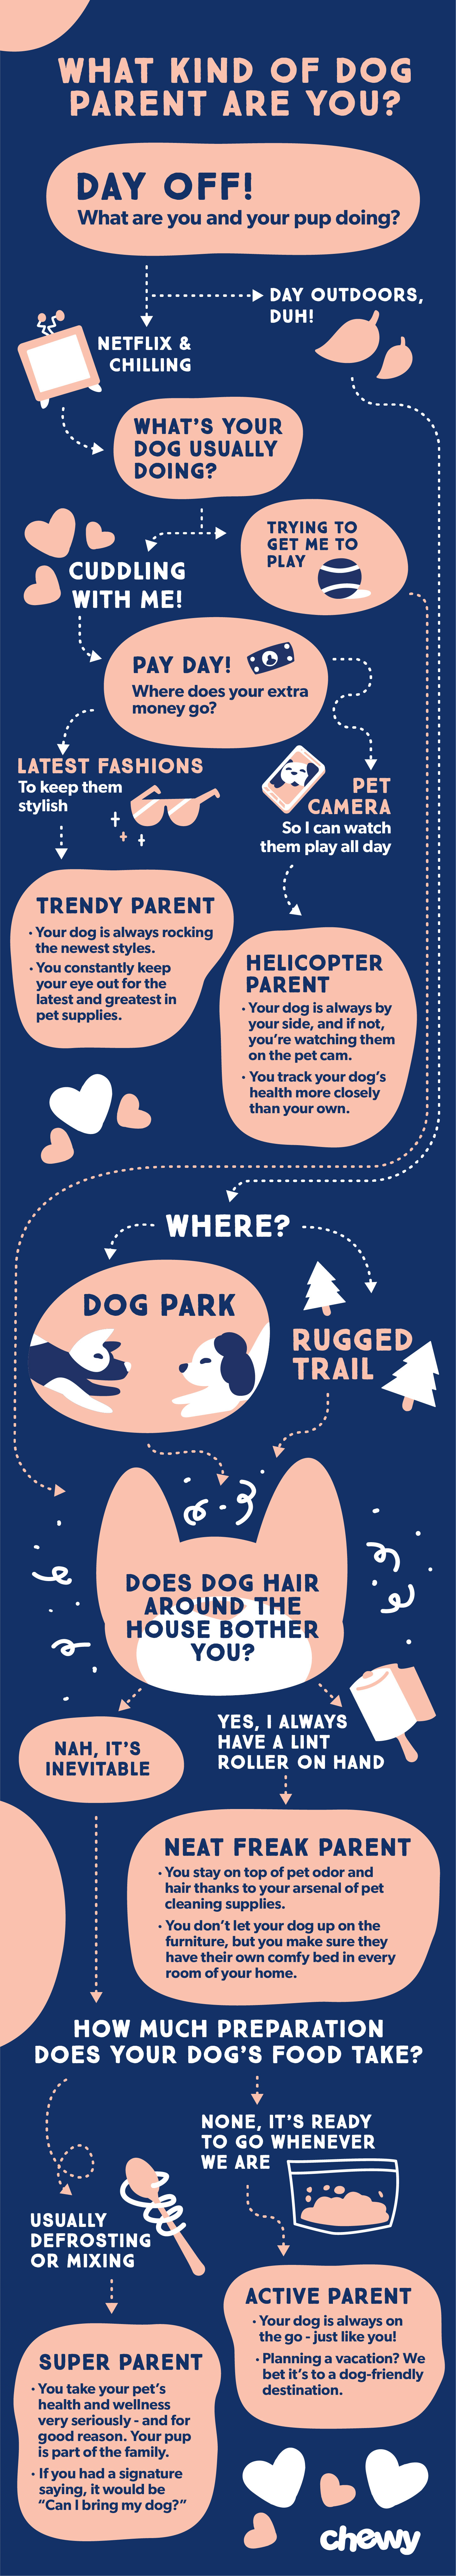 What kind of dog parent are you quiz